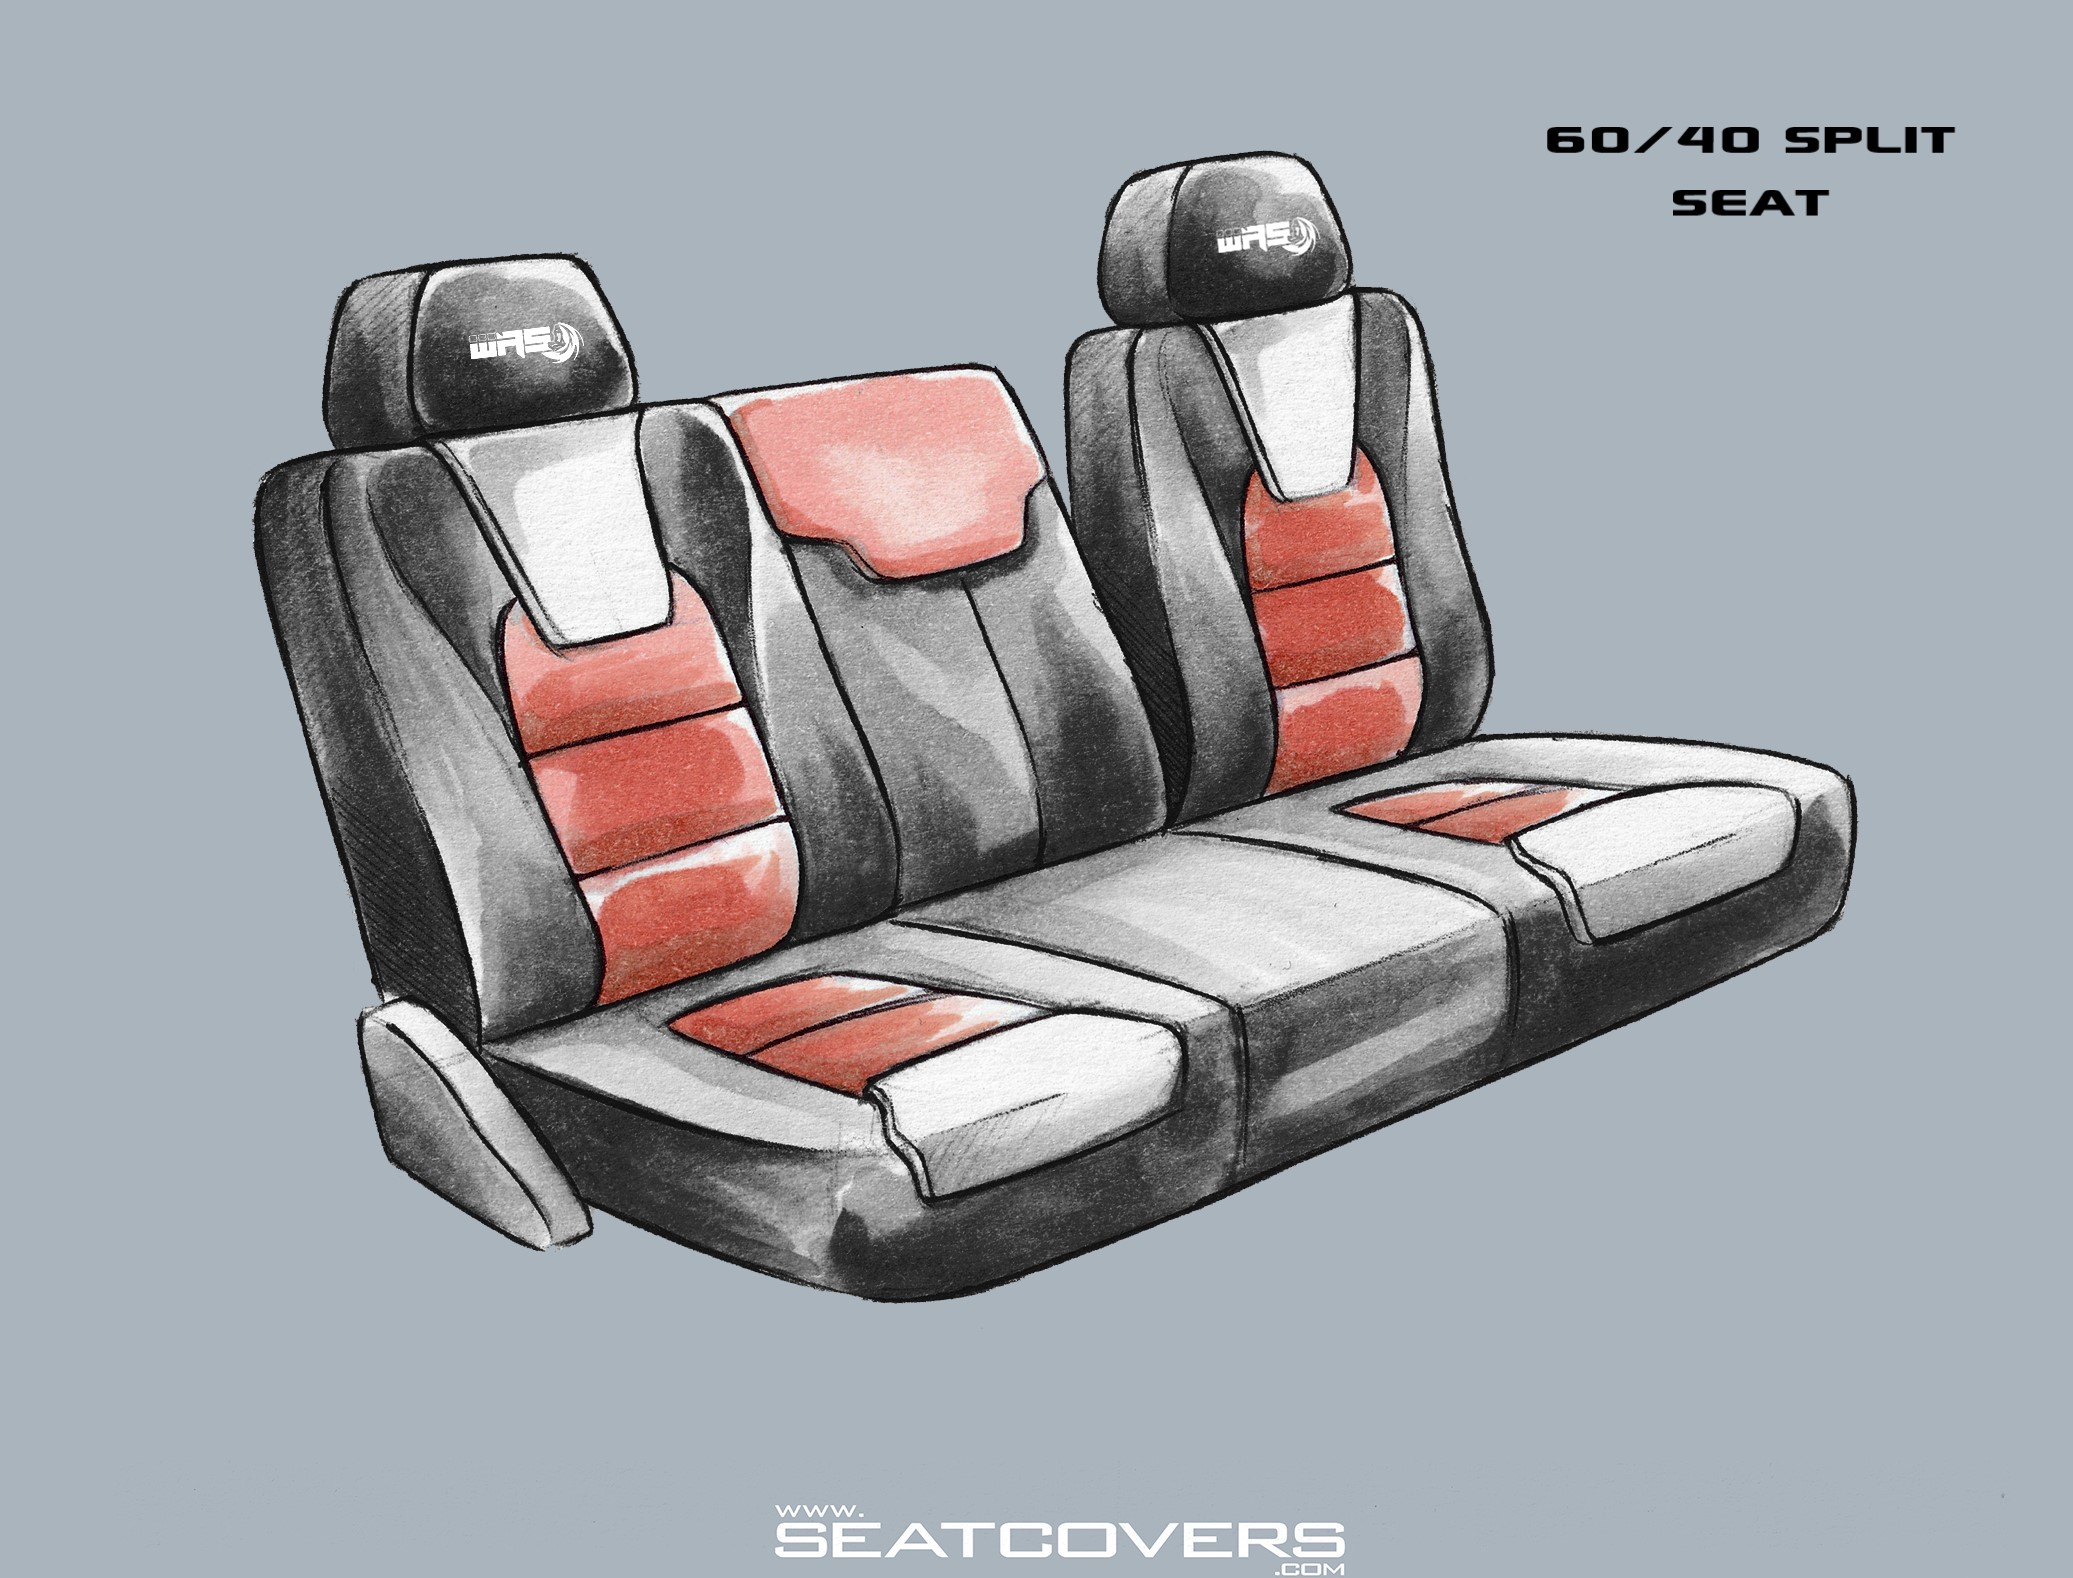 Toyota Sienna rear seat seat covers Sienna seat covers www.seatcovers.com